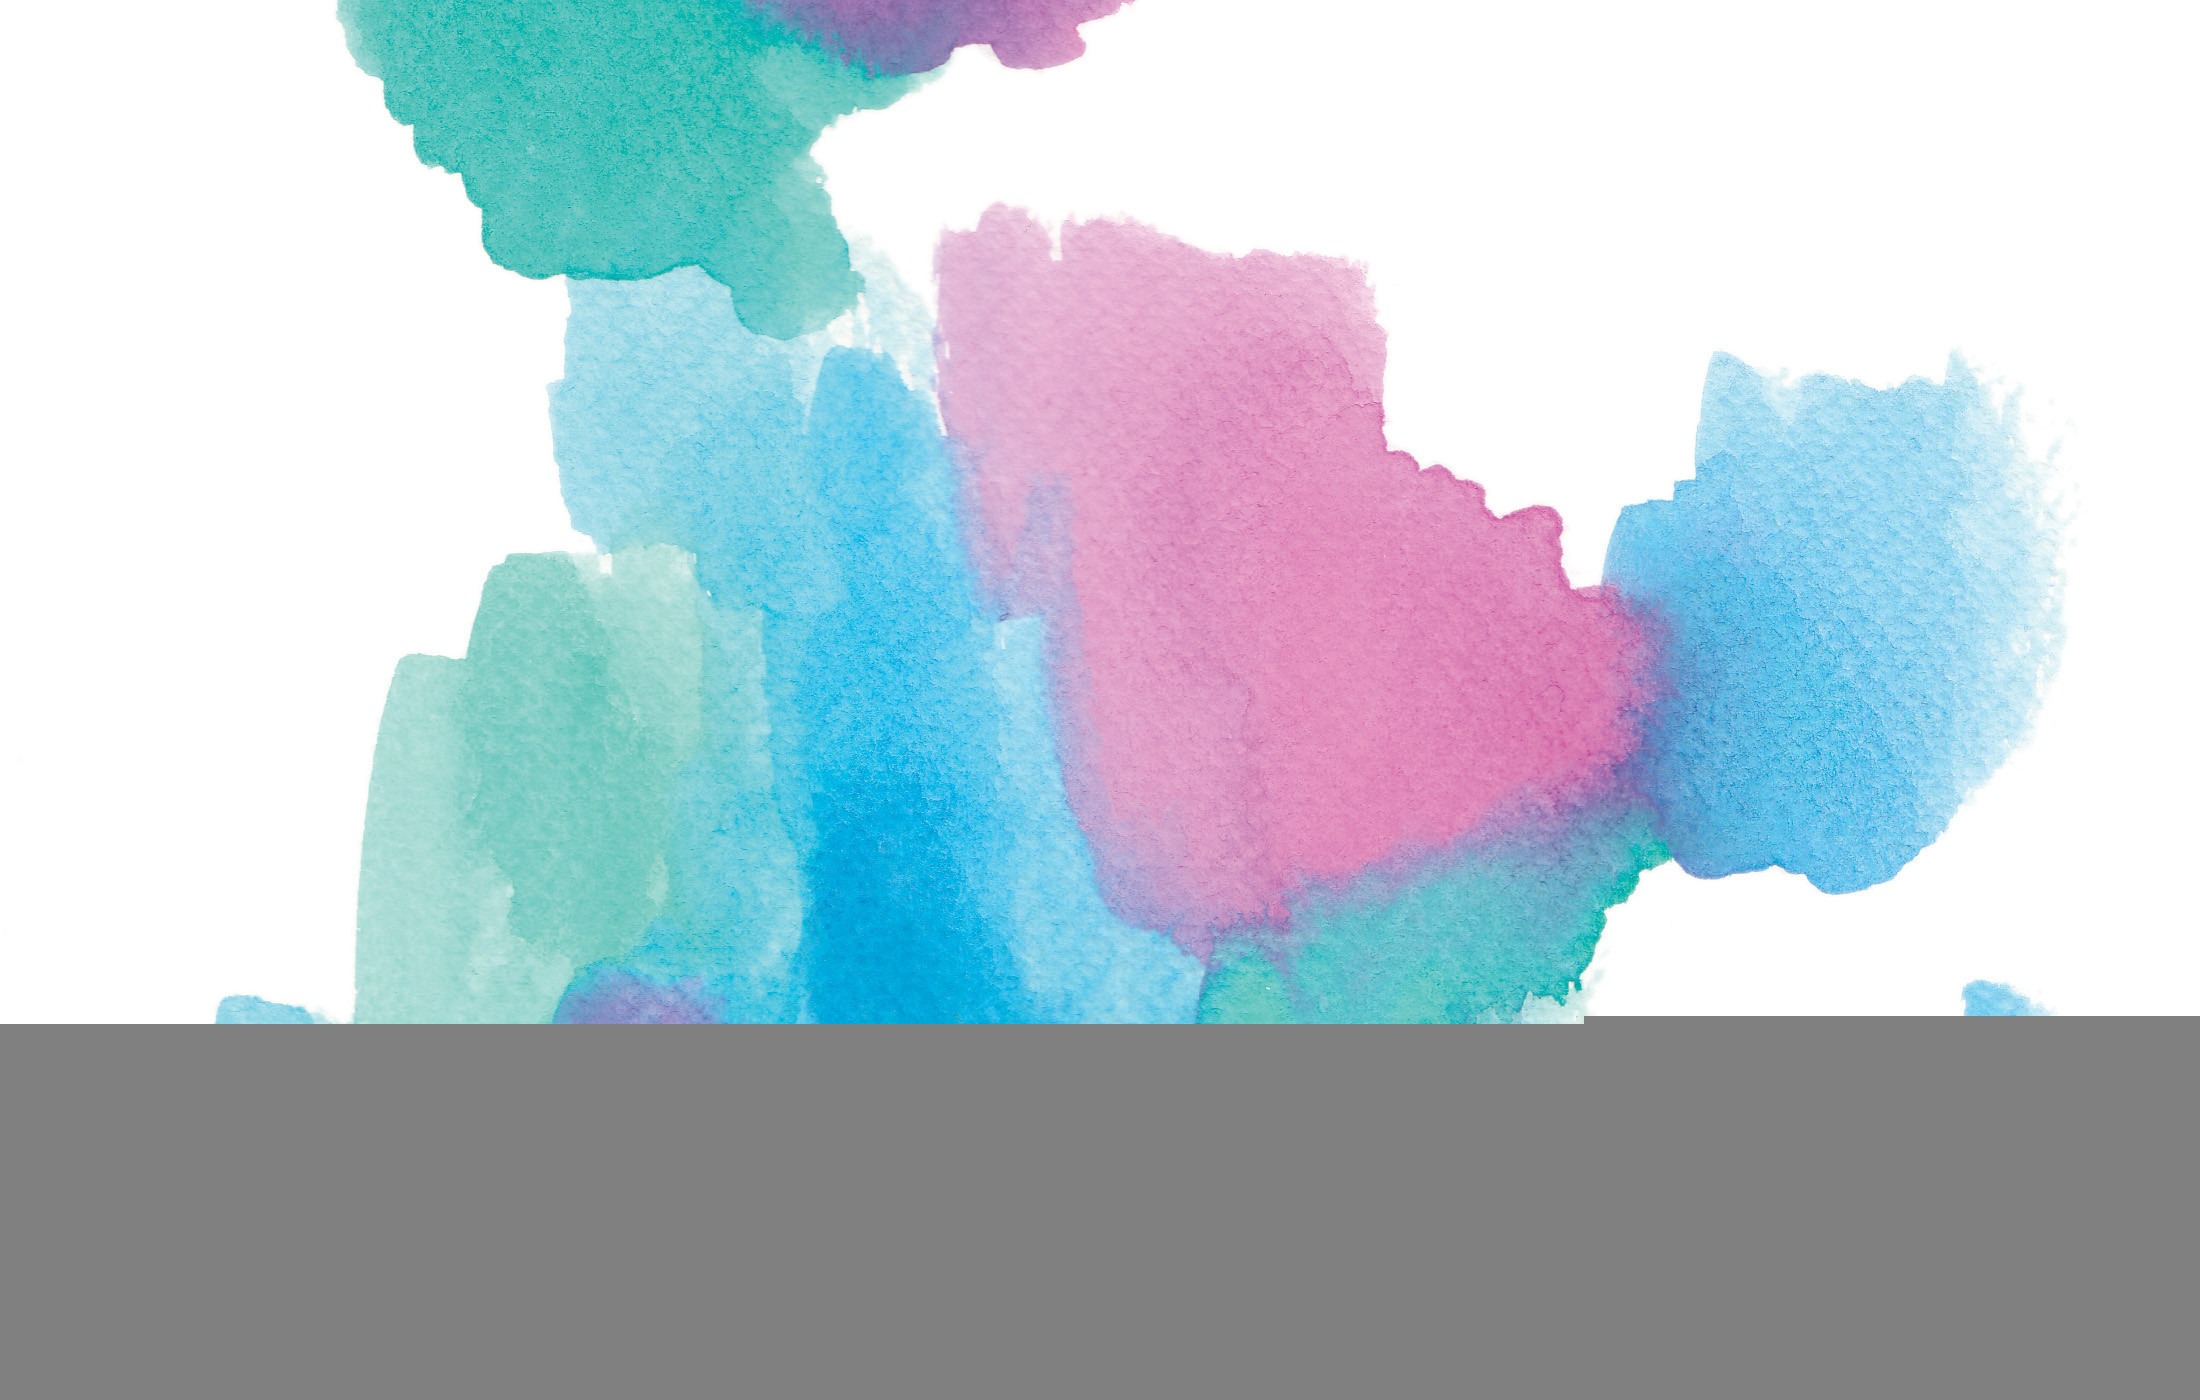 Watercolor design-only version (download here)